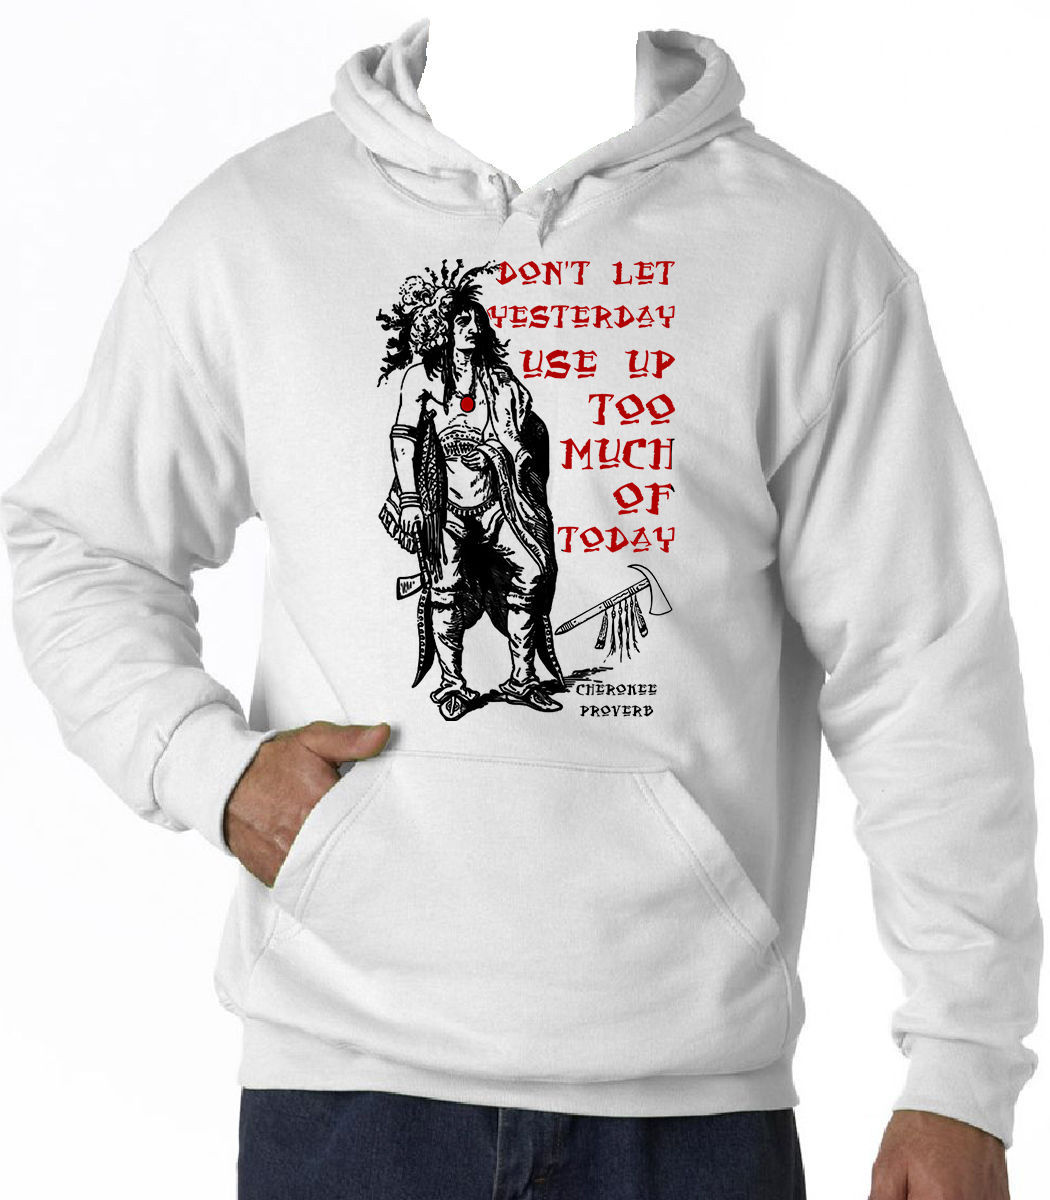 CHEROKEE PROVERB - NEW COTTON WHITE HOODIE - $39.39